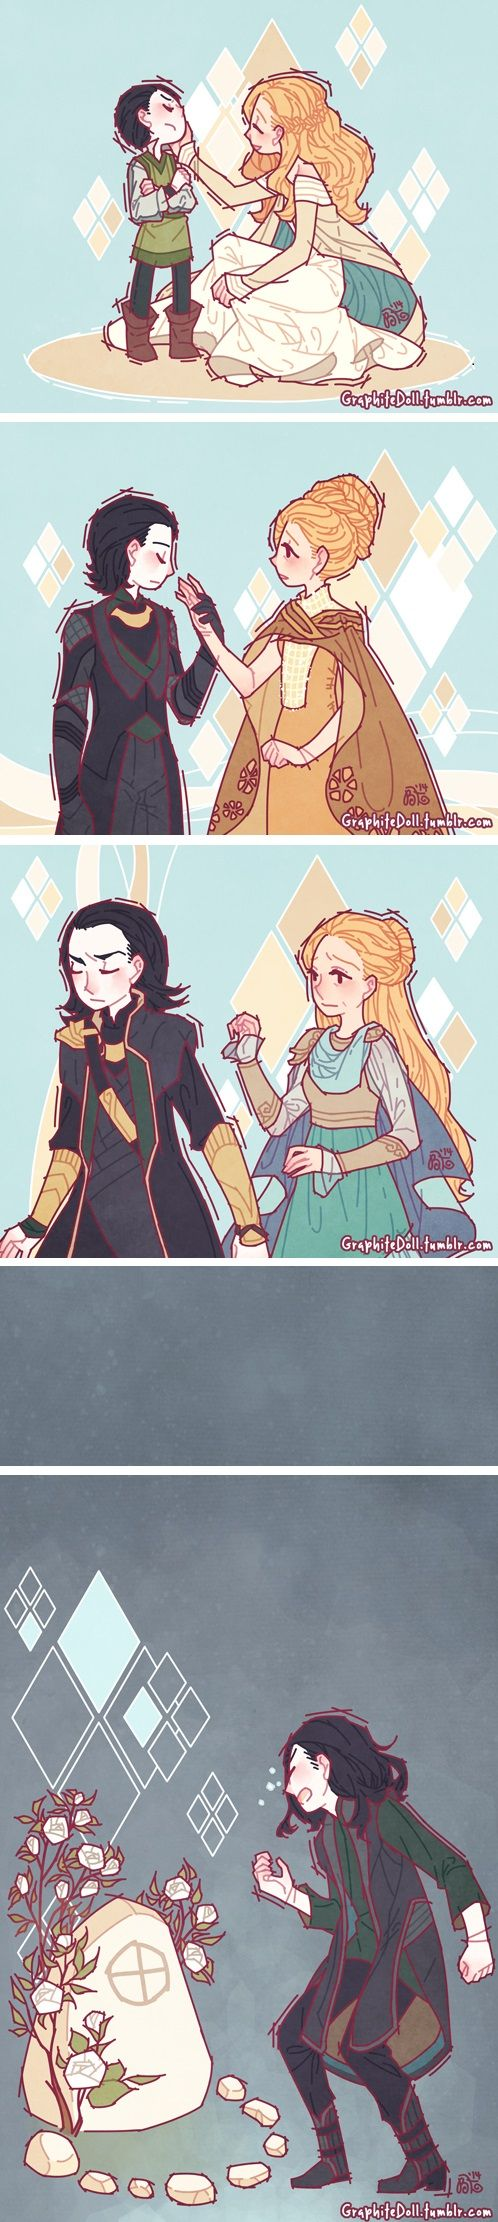 Loki and Frigga... So many feels....... :( (and such a pretty art style hnnng)